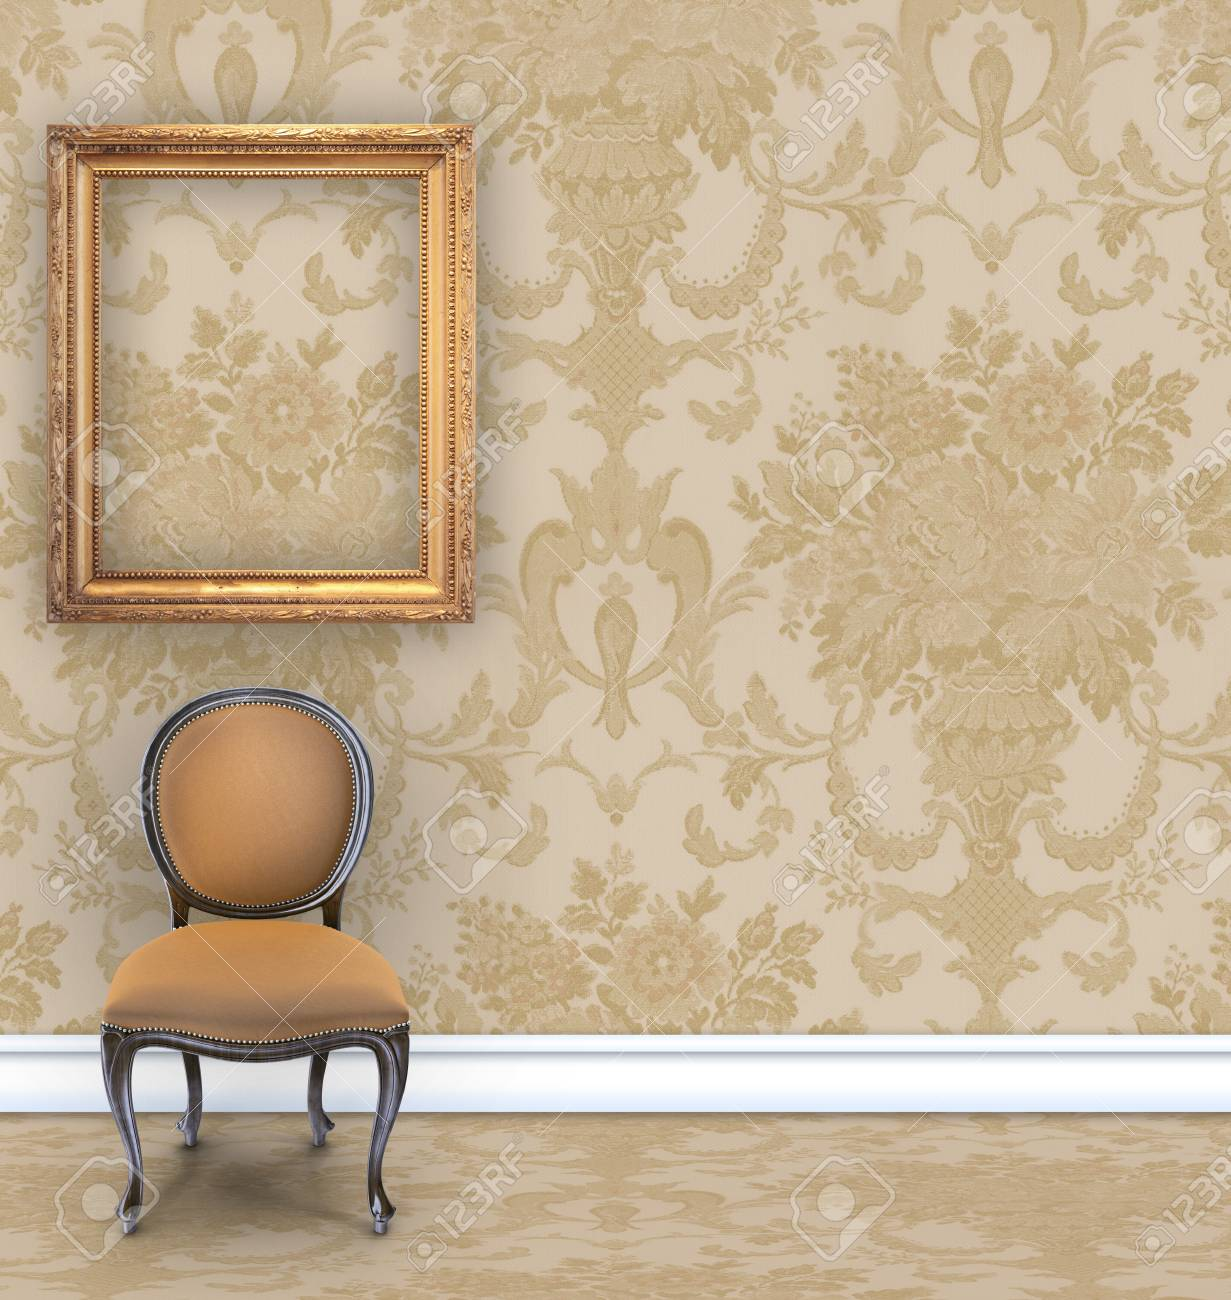 Room With Tan Damask Wallpaper A Velvet Chair And An Empty Gold Picture Frame